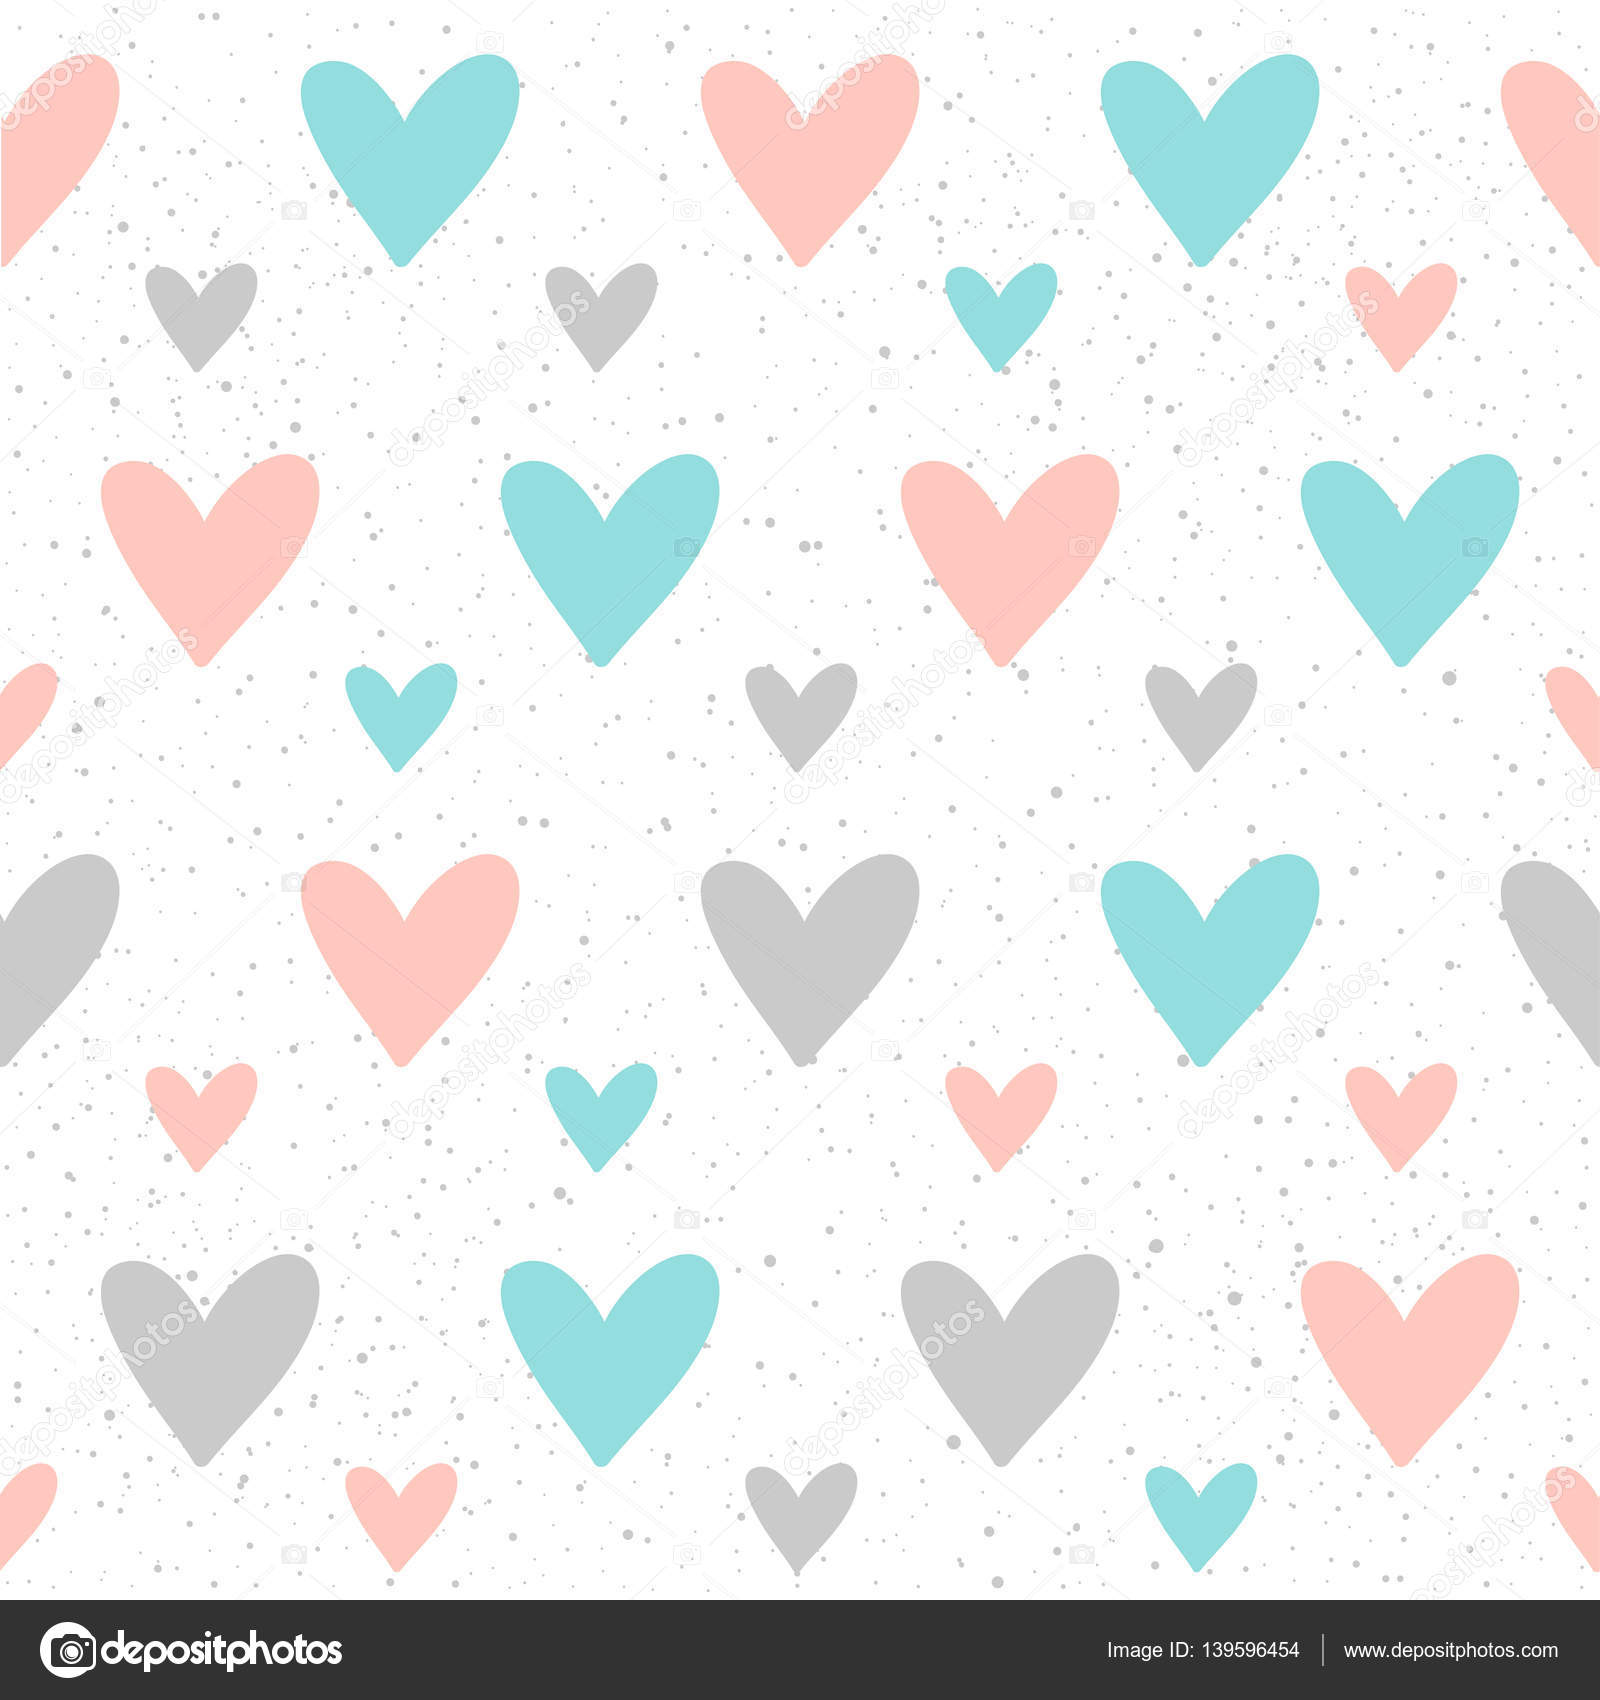 heart seamless pattern background doodle handmade blue pink and